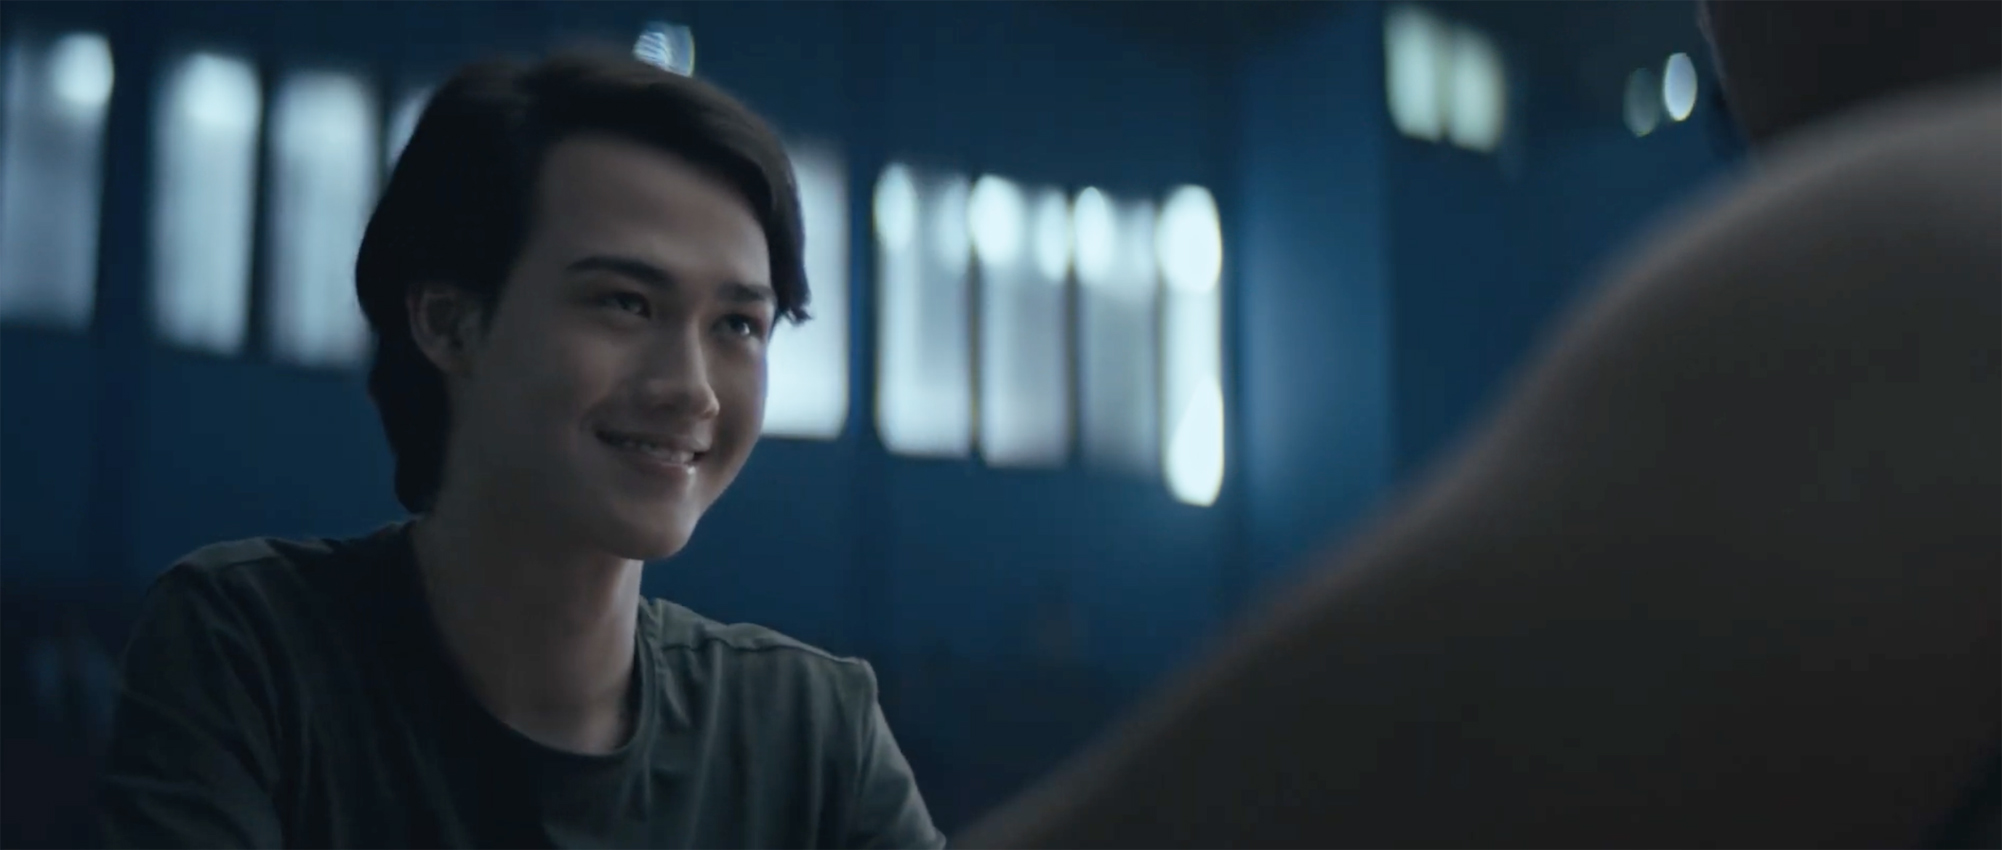 Ogilvy Singapore's latest film for Pond's Men features in your face slapstick comedy